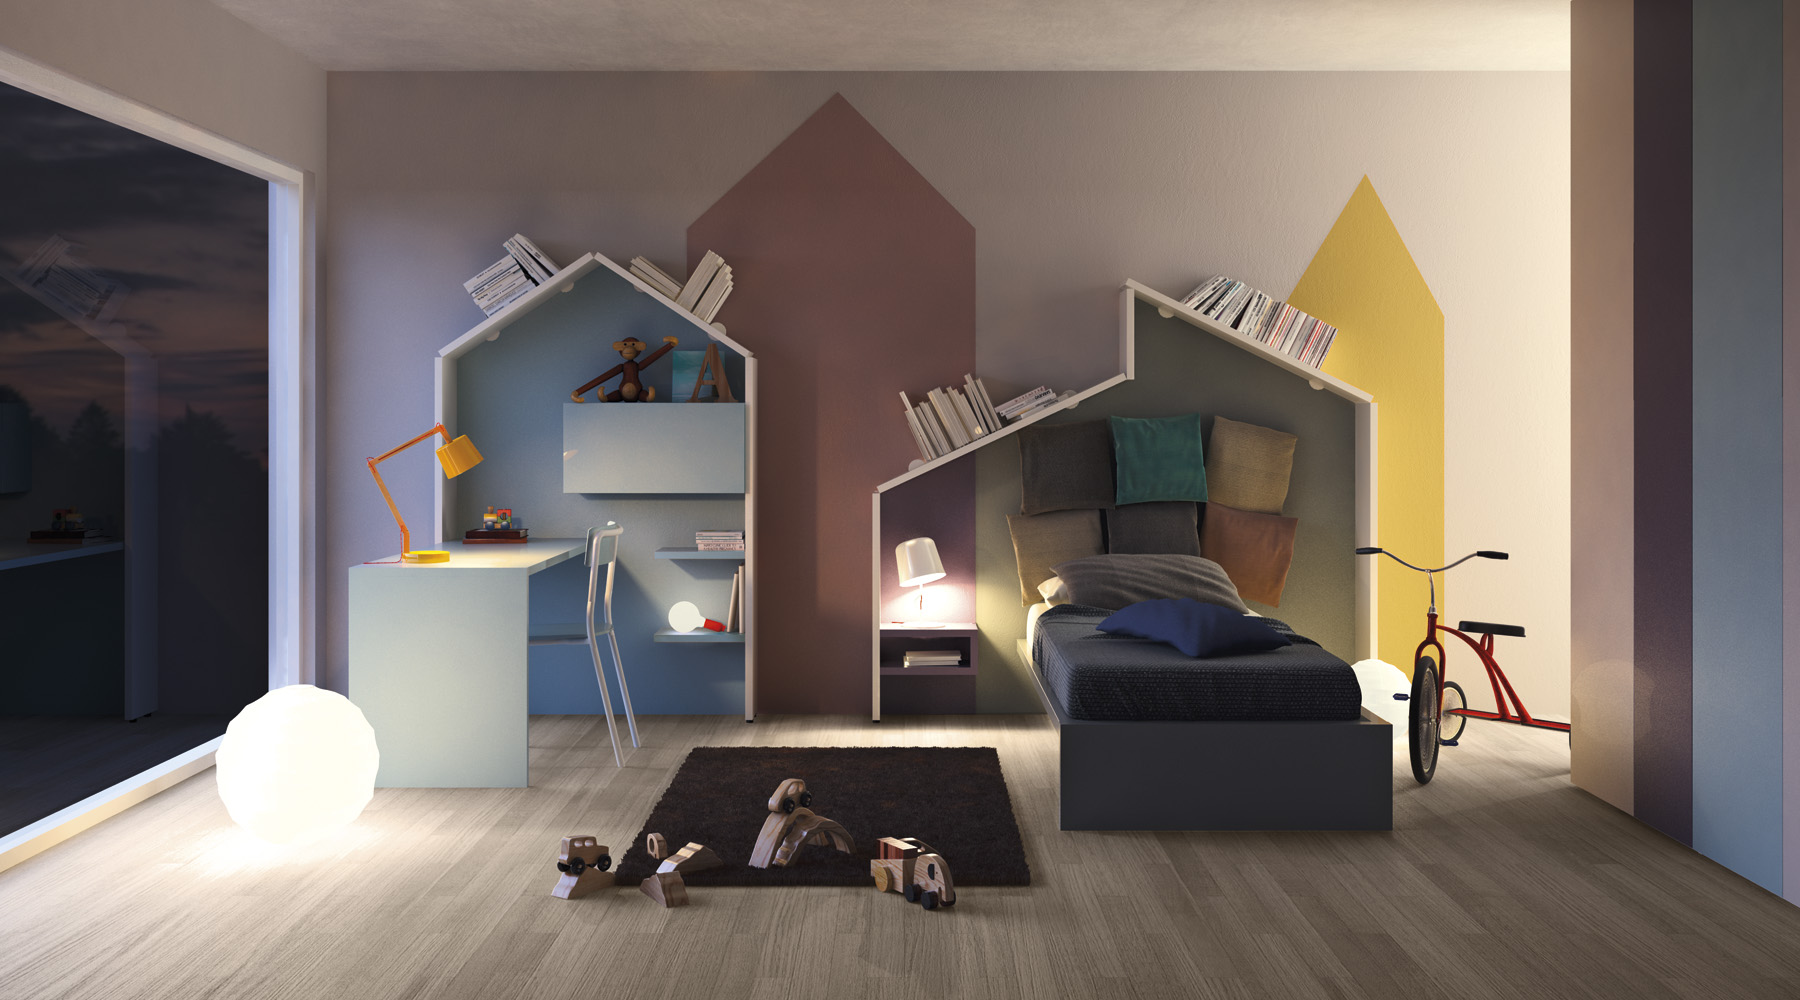 Chambre enfant d co de mur color e facile et bluffante le blog d co de mlc - Idee deco couleur mur ...